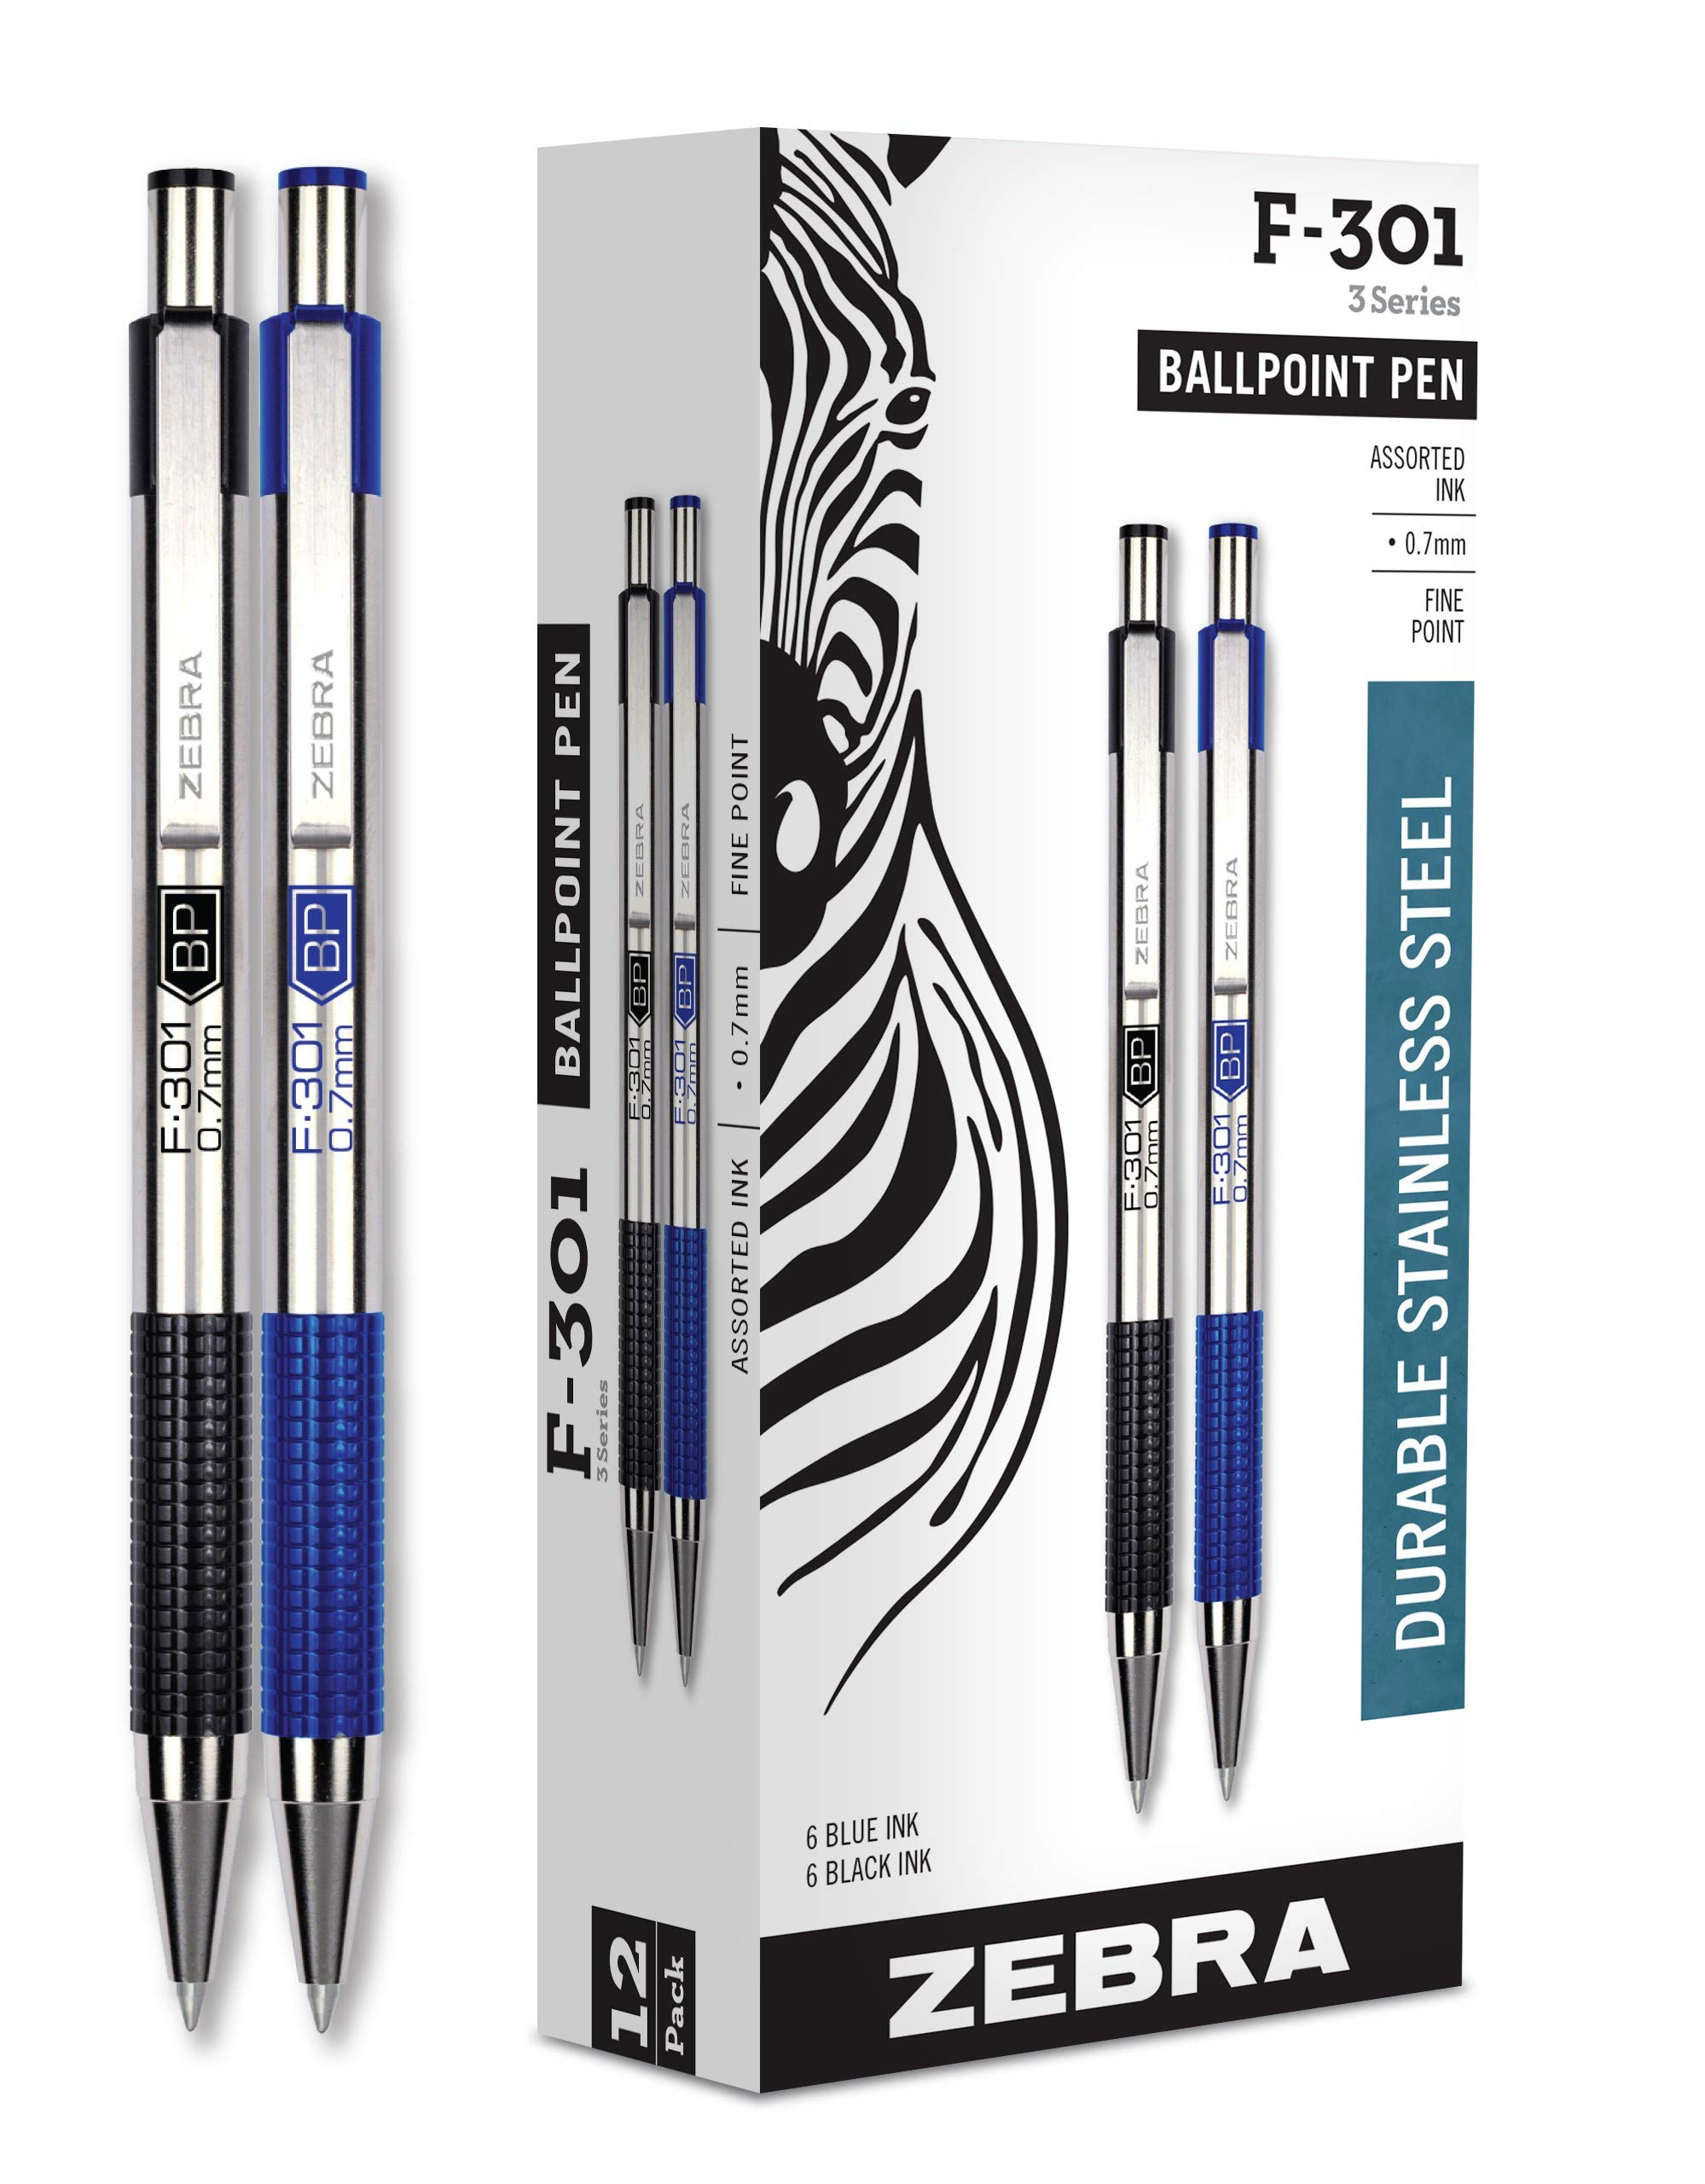 Zebra Pens Fine Point F 301, Bulk Combo Pack of 6 BLACK INK & 6 BLUE INK metal pens (Total of 12 Pens), Ballpoint Stainless Steel Retractable 0.7mm fine point ink pens